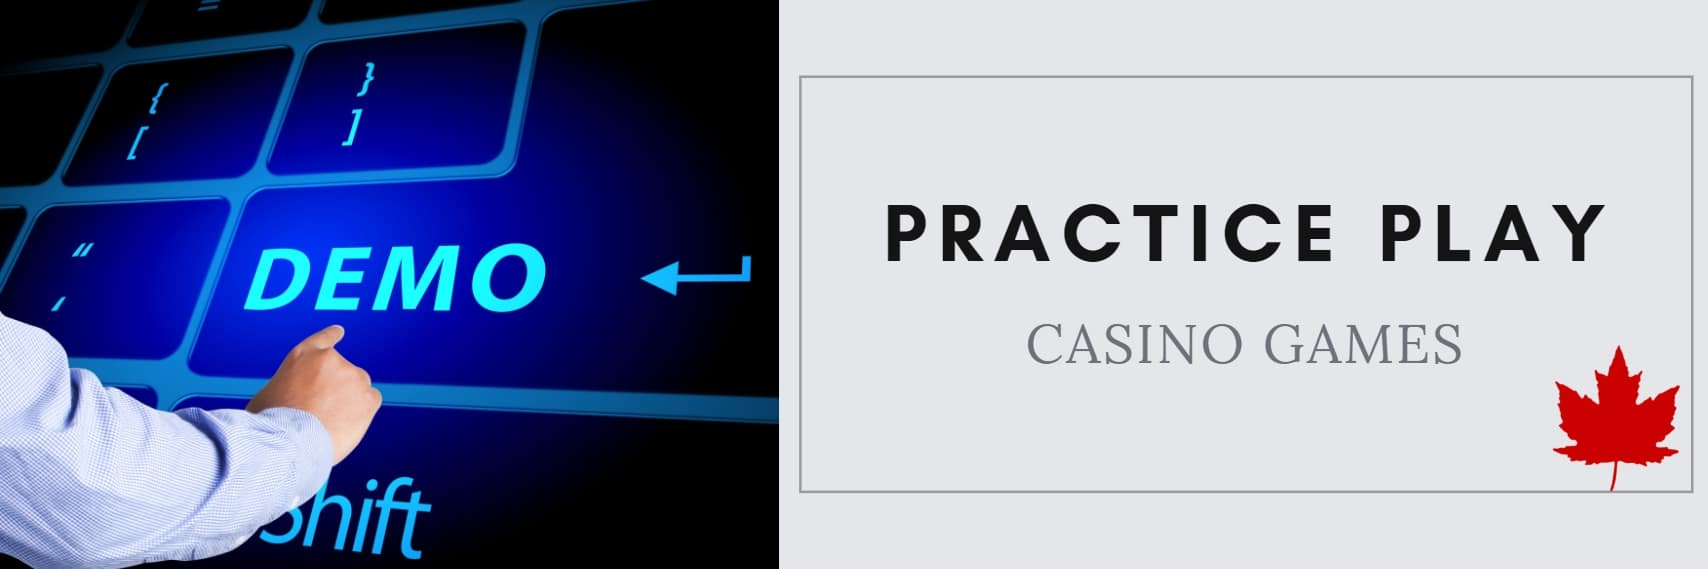 practice play casino games